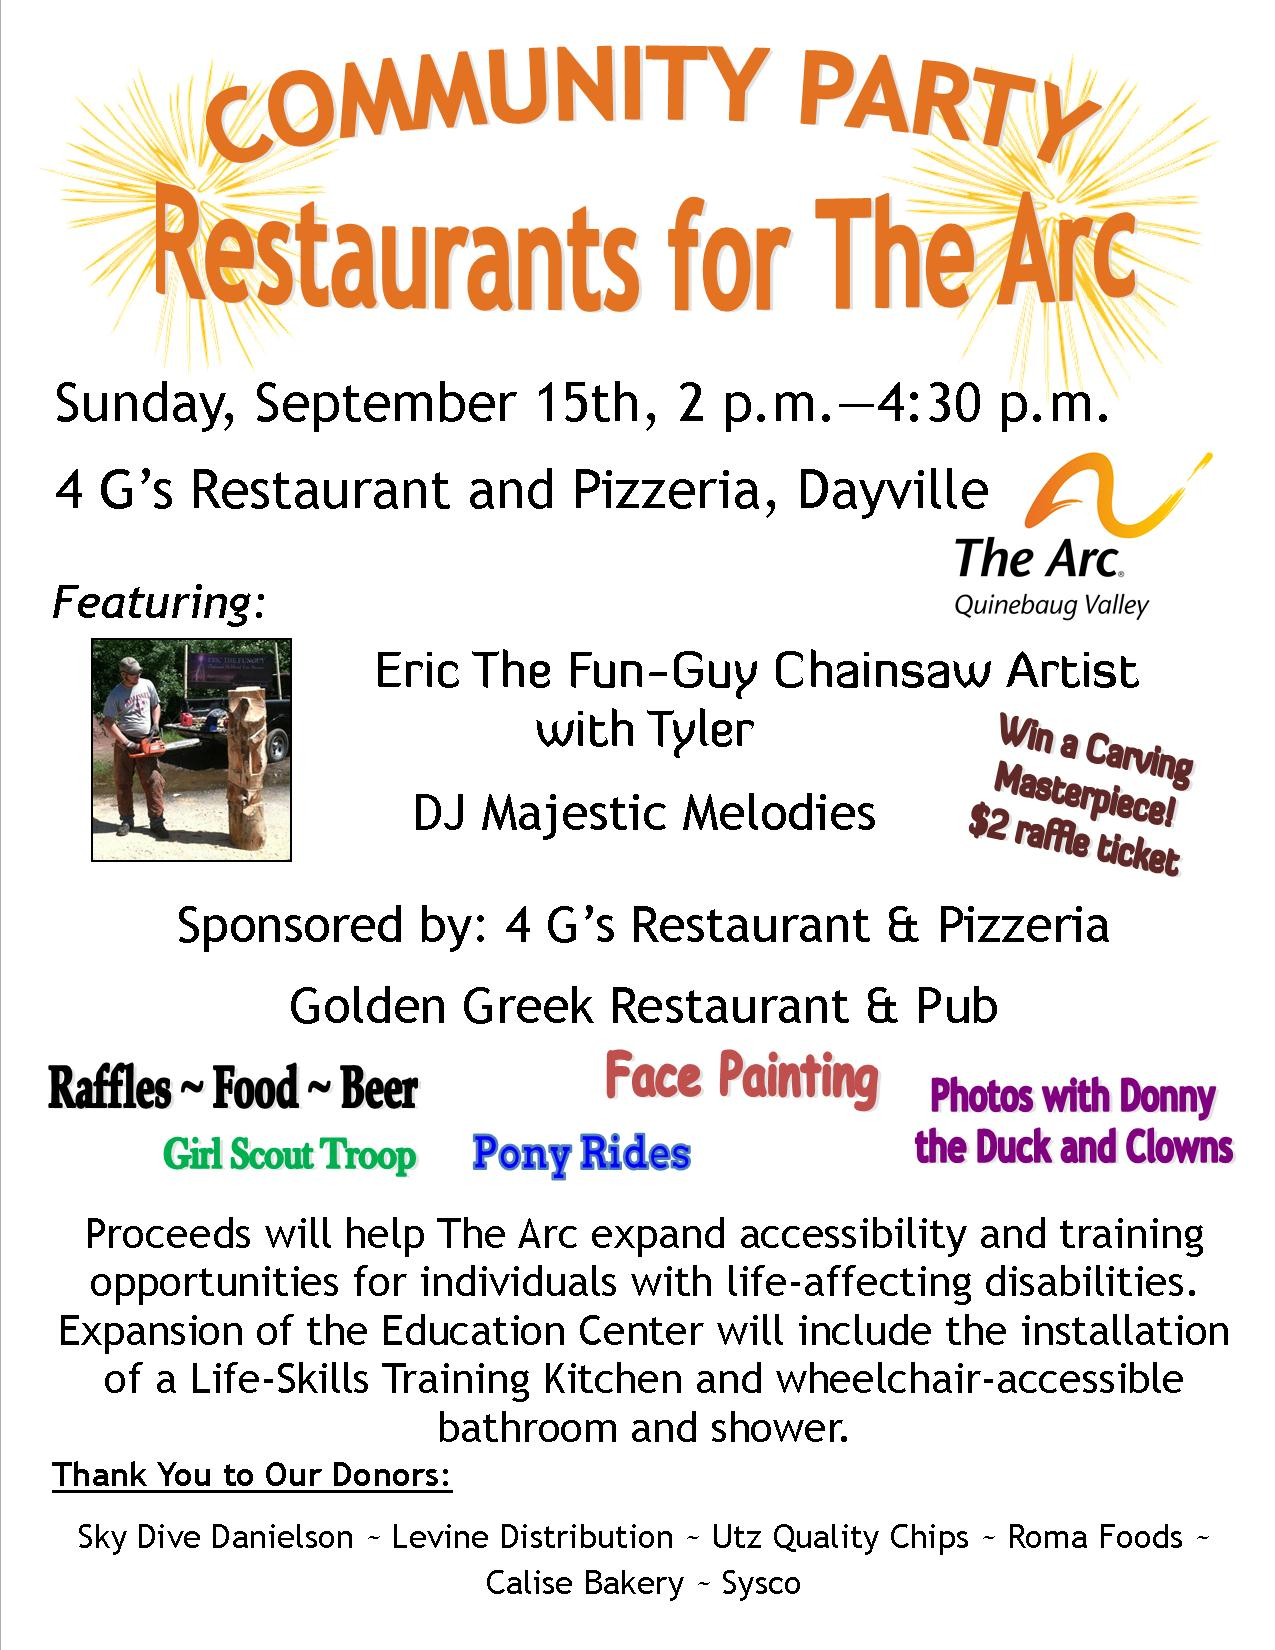 Community Party Restaurants for The Arc